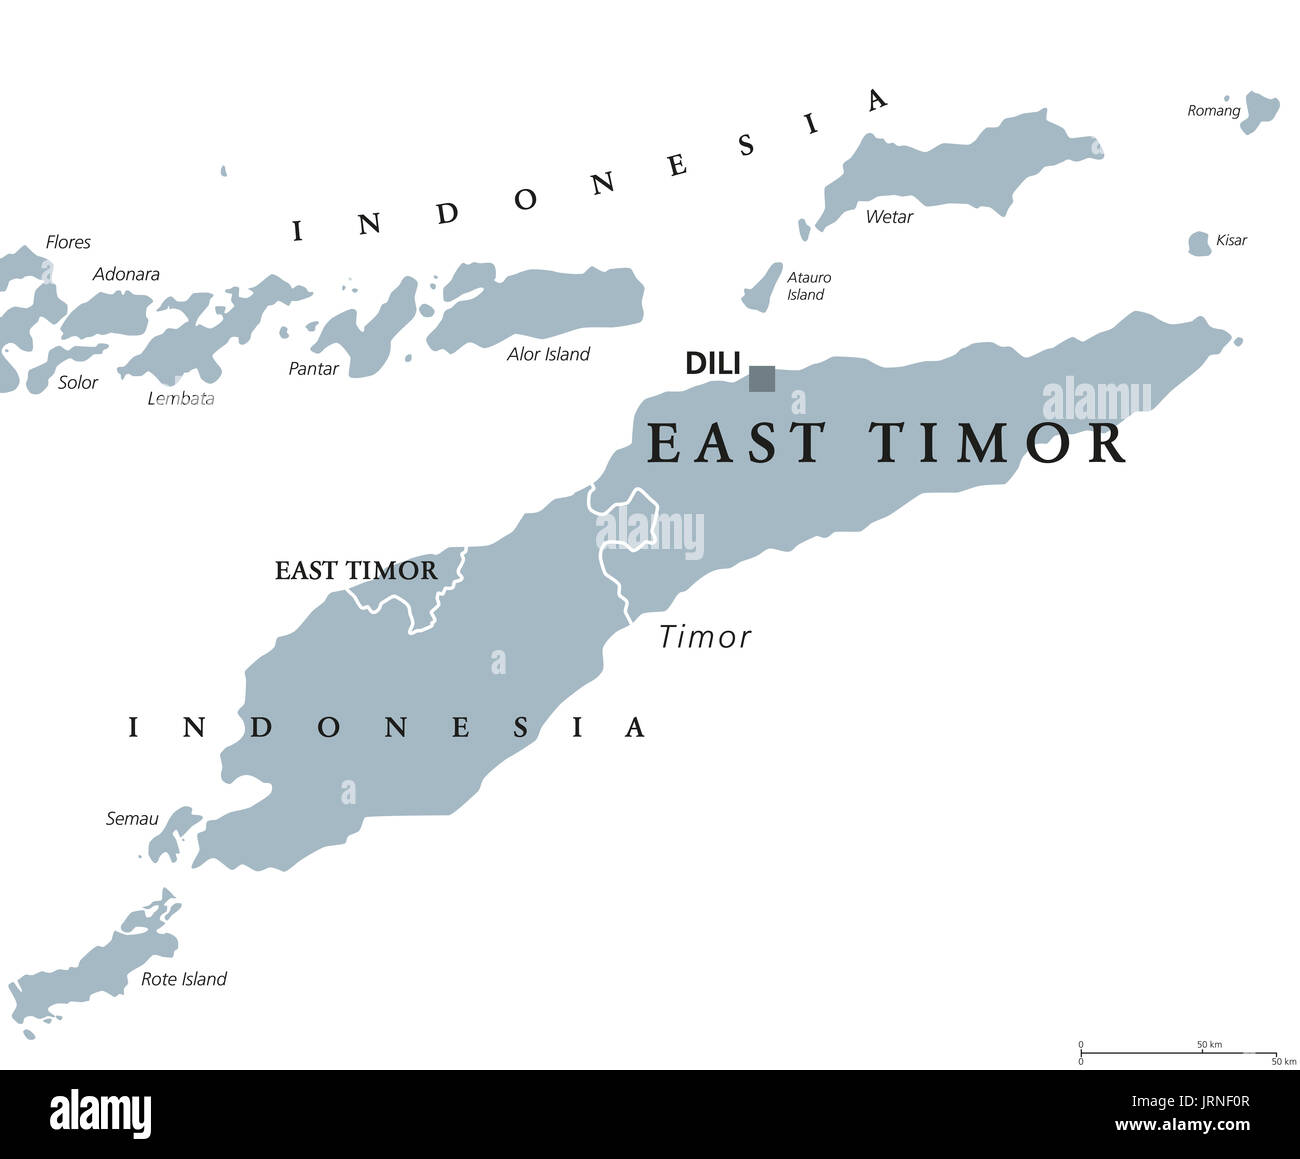 the issue of the people of the island of east timor